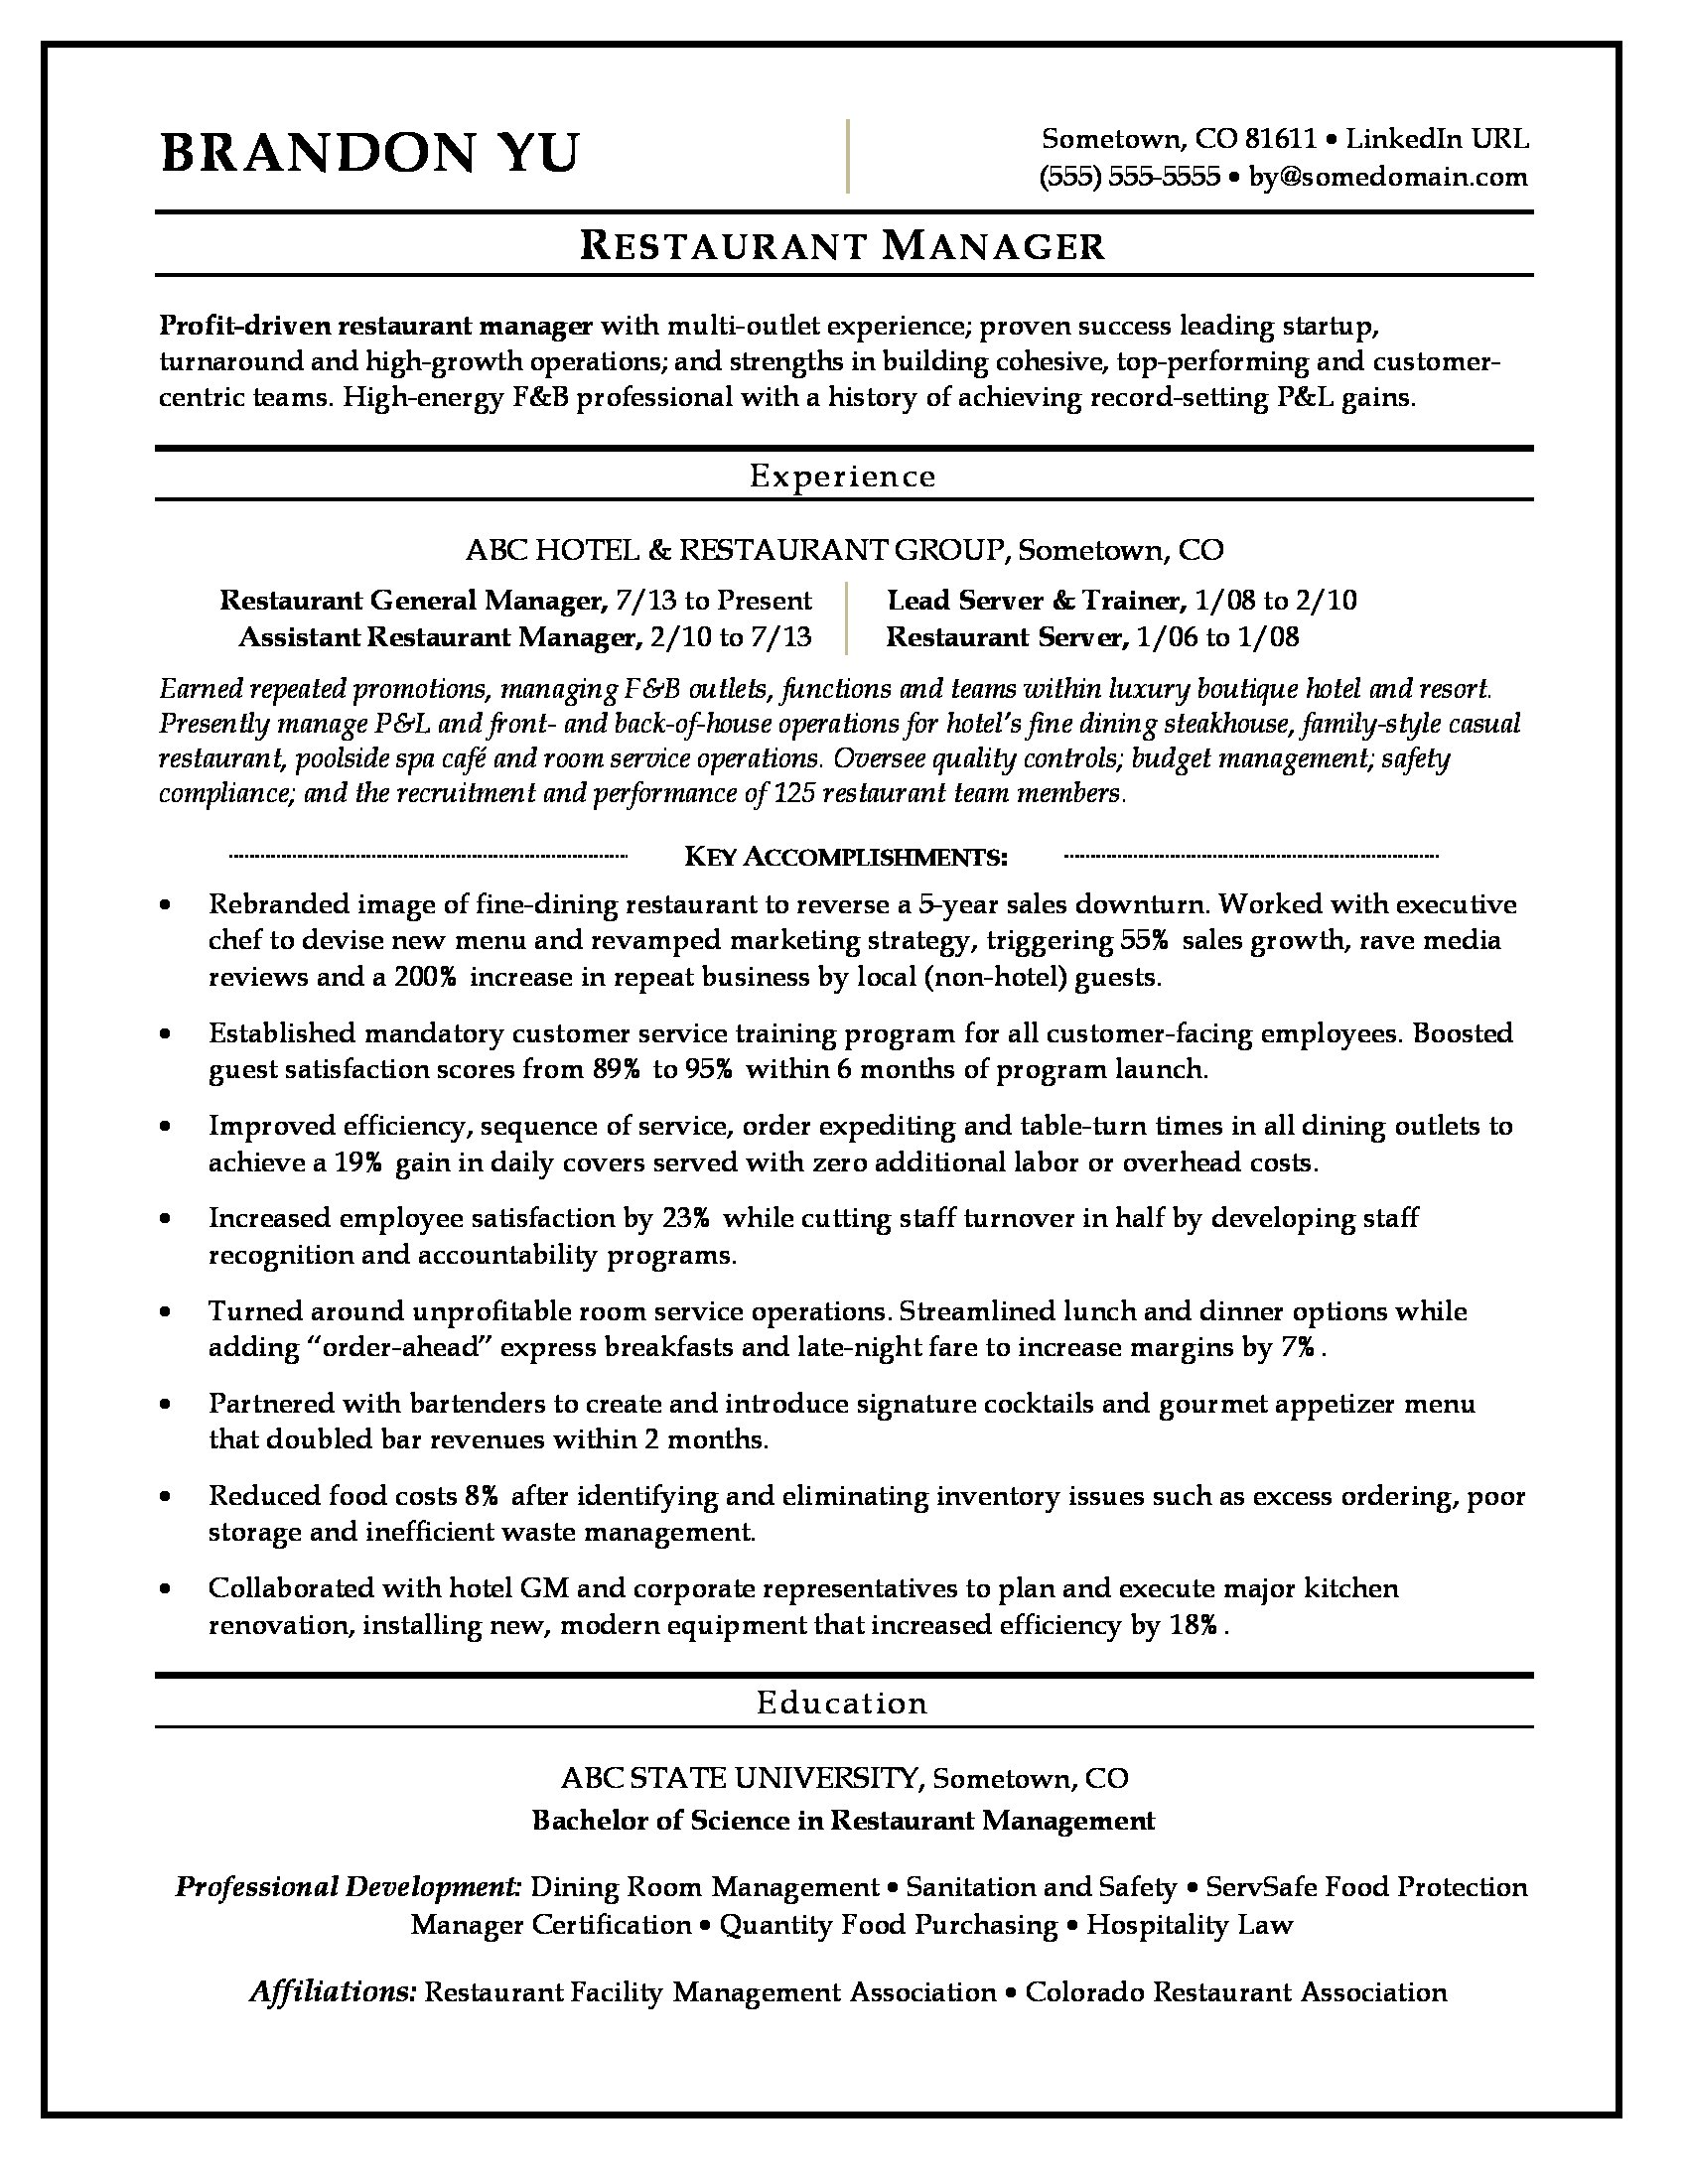 restaurant manager resume sample monster food safety objective another word for volunteer Resume Food Safety Resume Objective